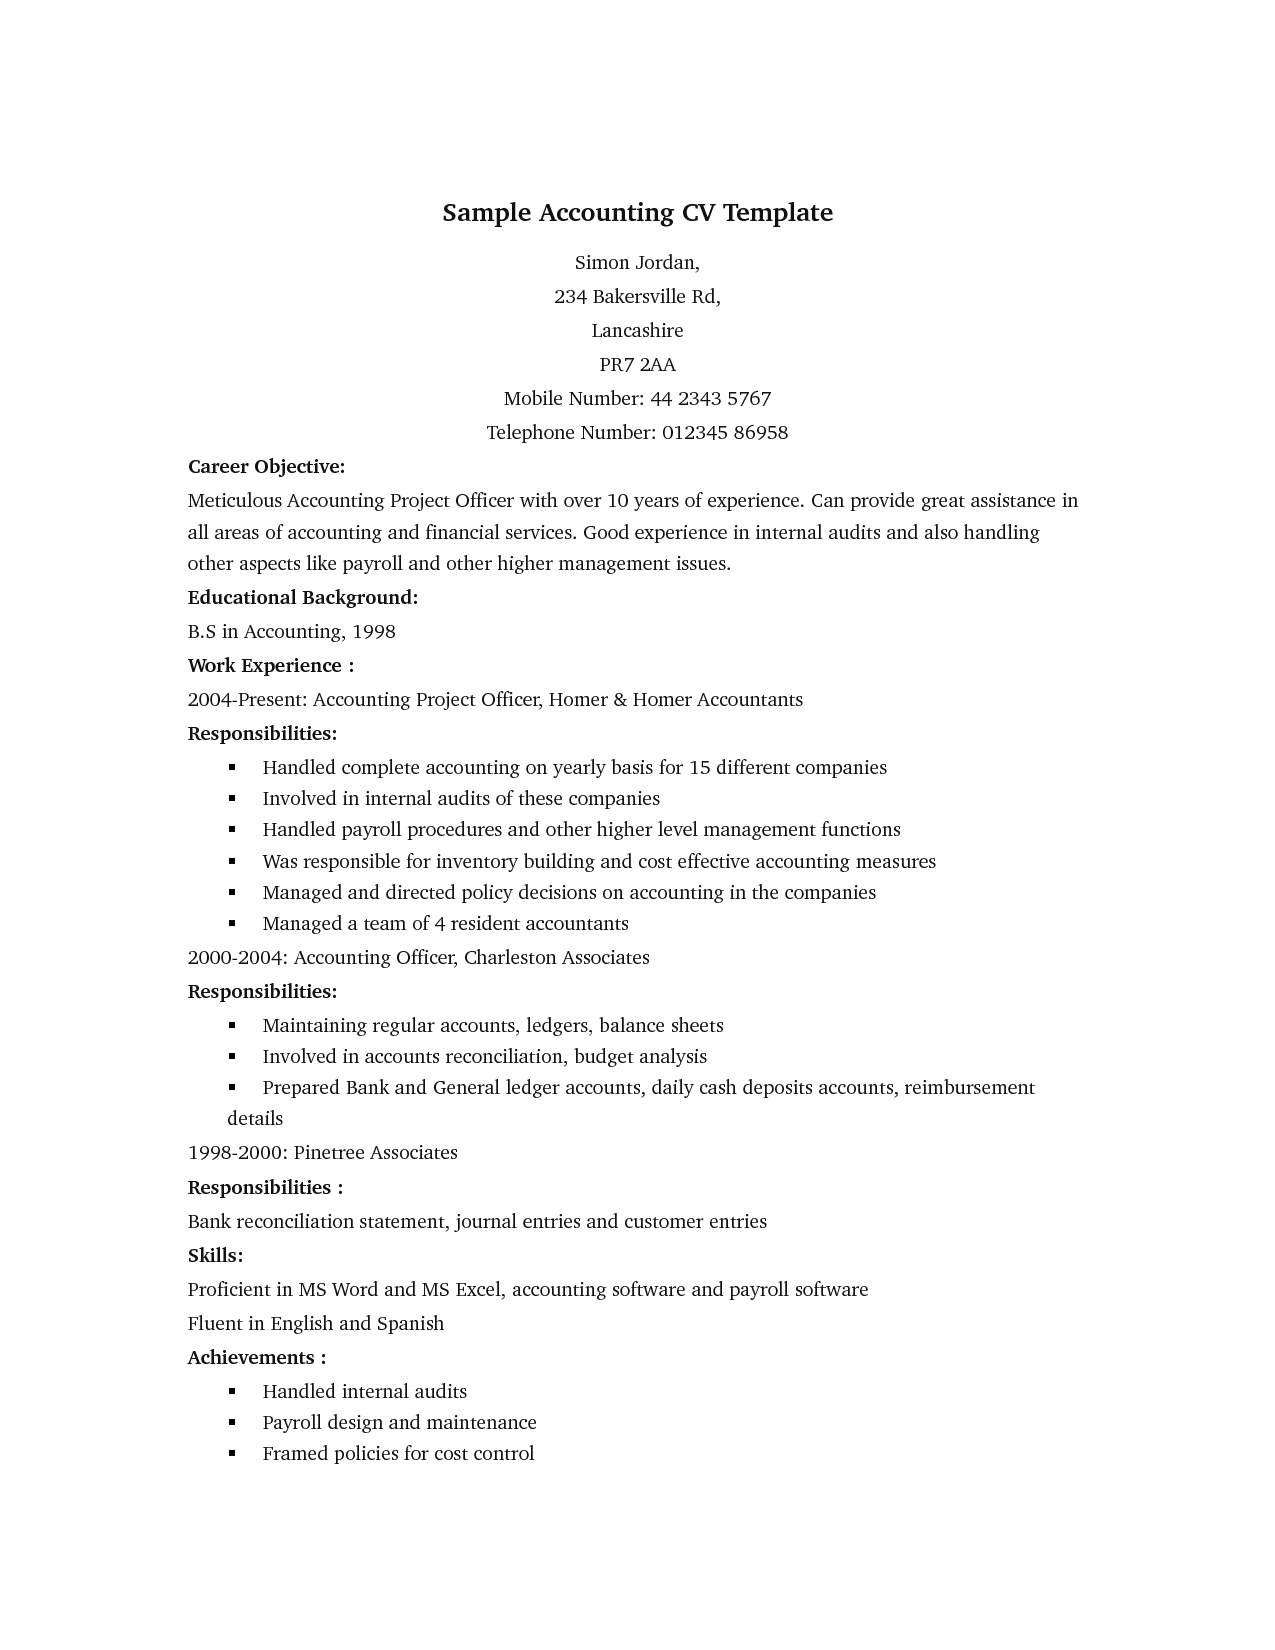 Sample Accounting Cv  Cv Examples    Resume Words